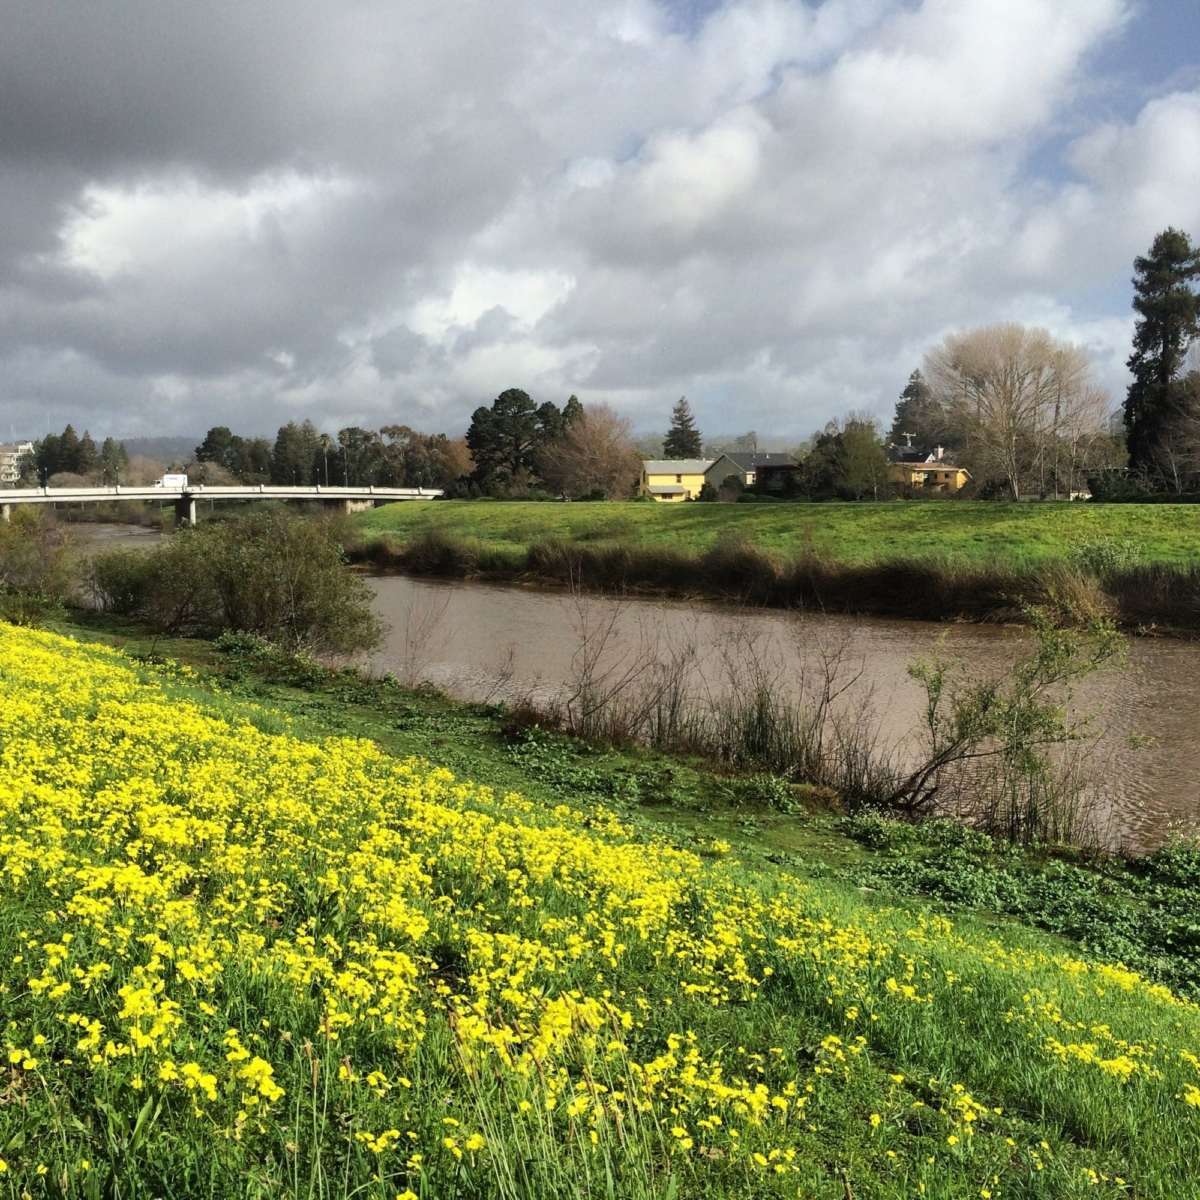 In February, the San Lorenzo's banks are carpeted in bright yellow sour grass.